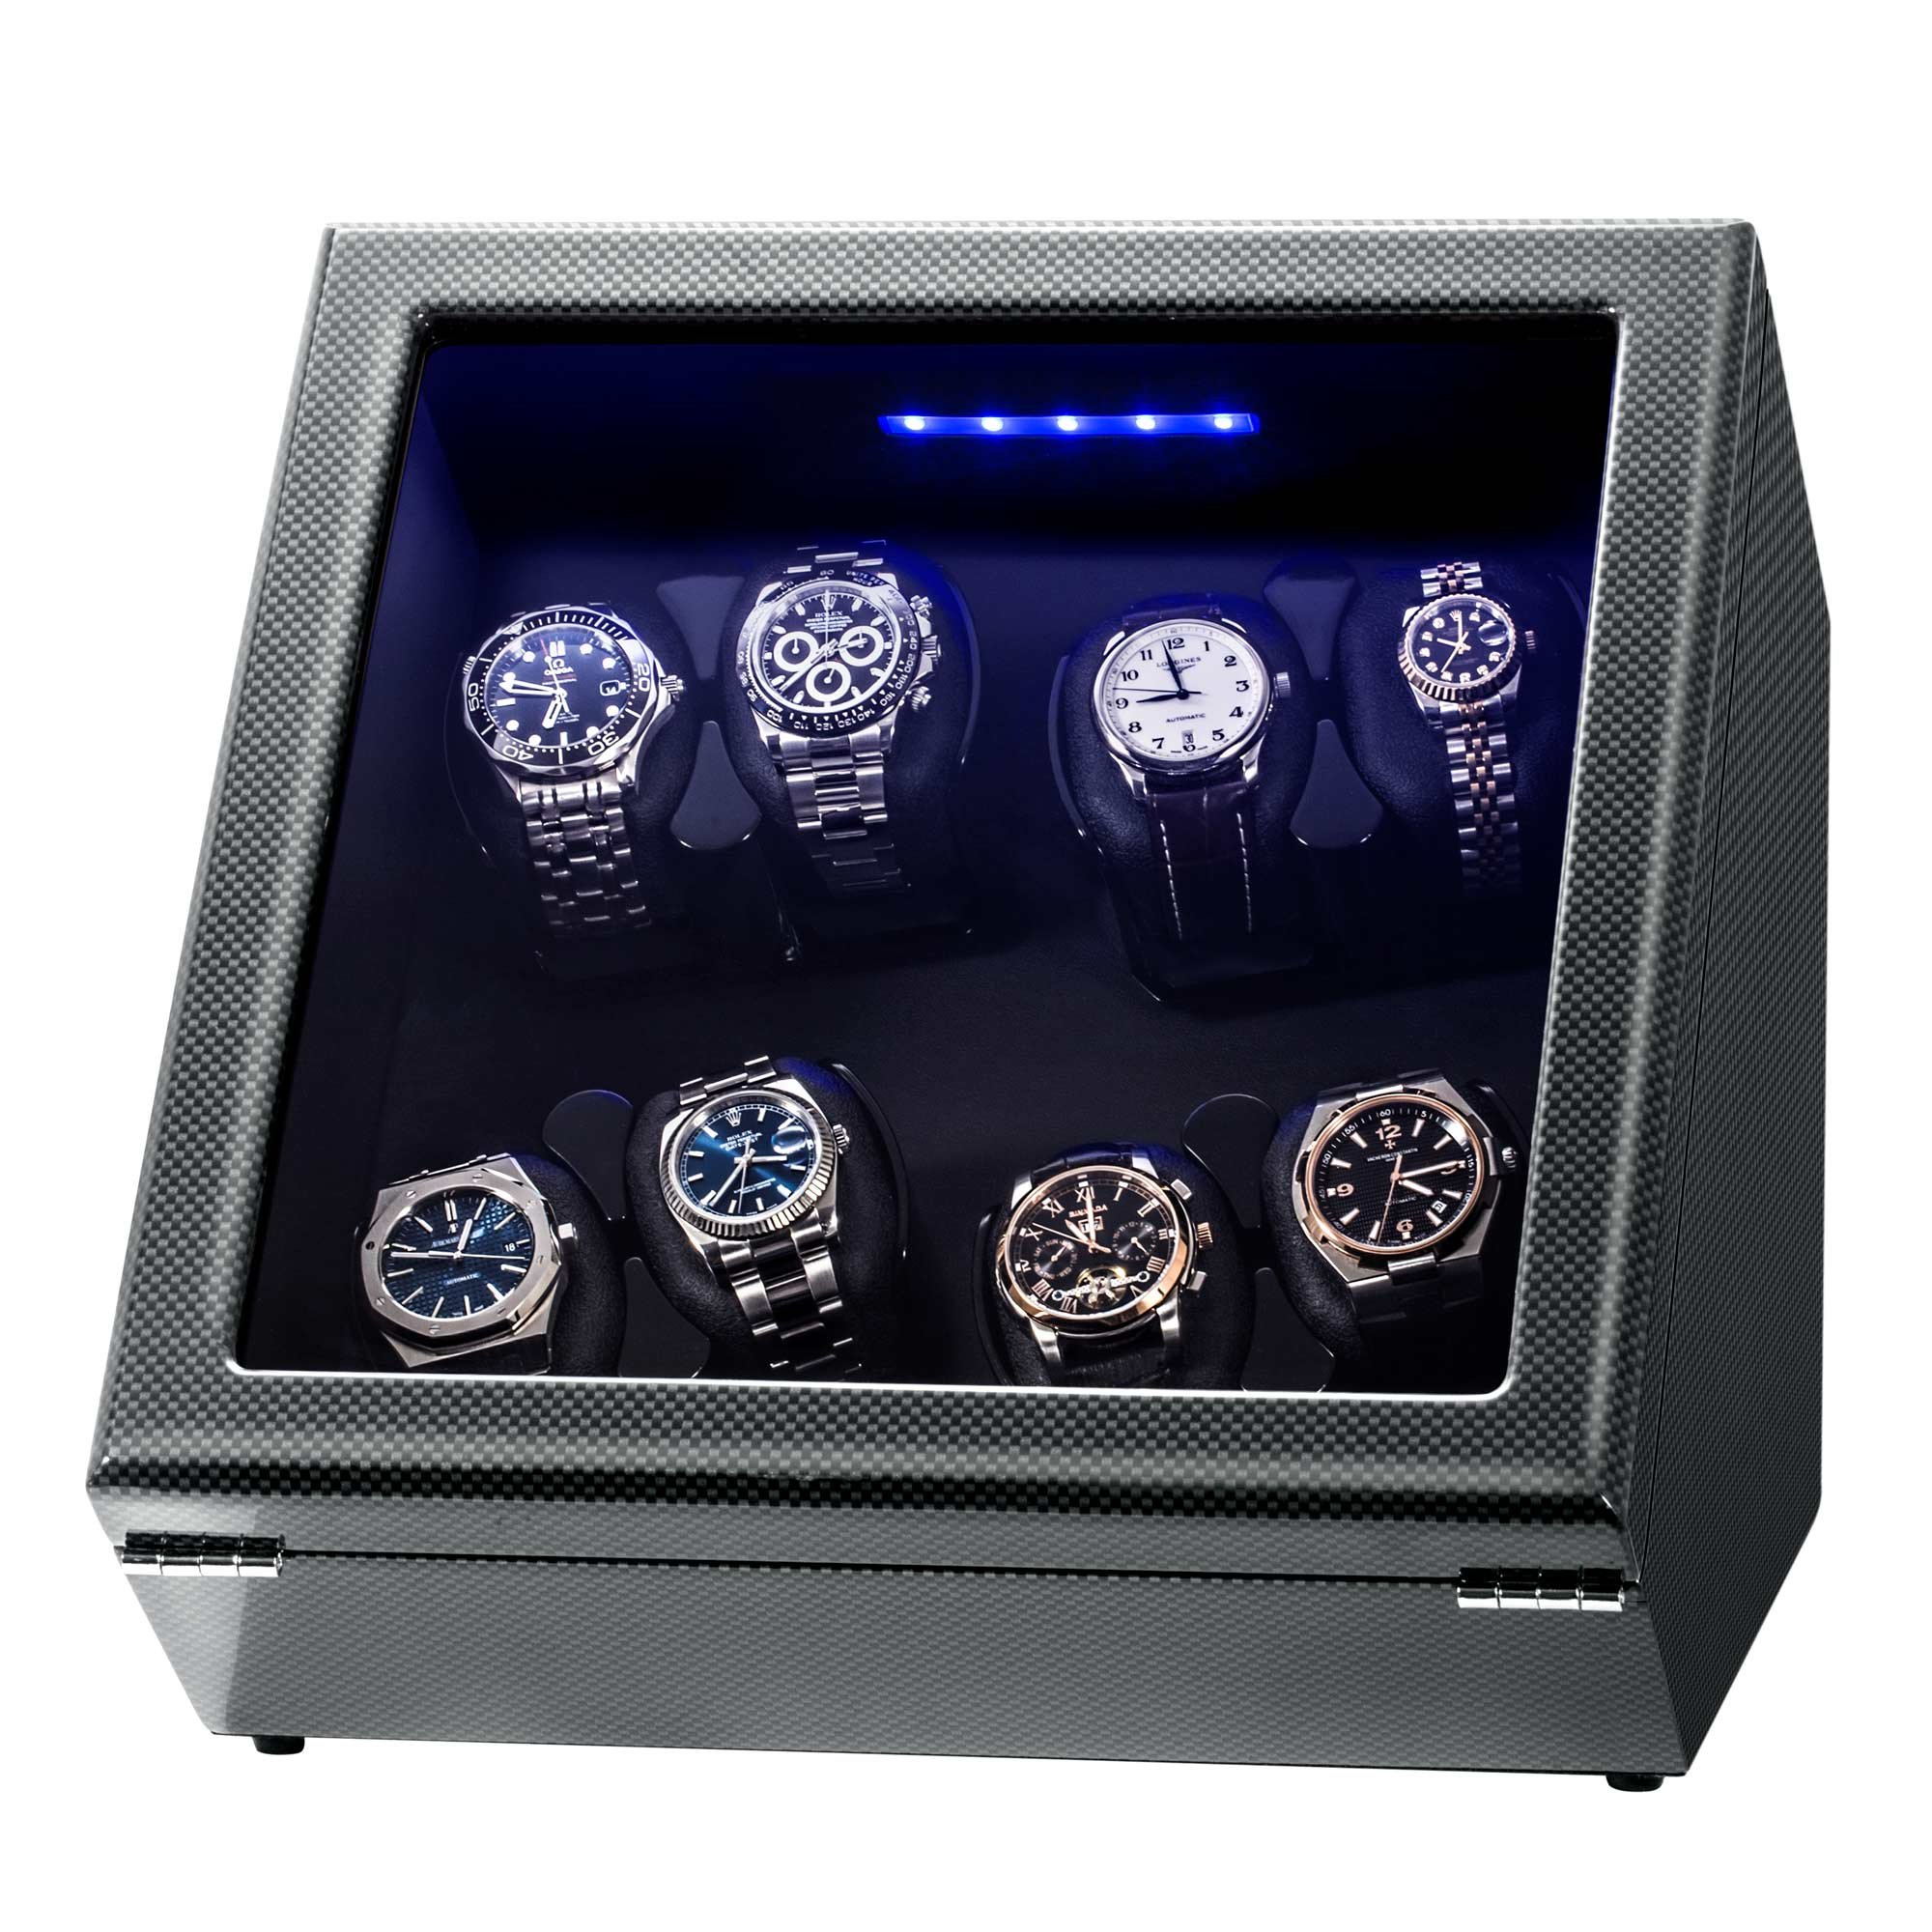 Watch Winder, Piano Finish Carbon Fiber Exterior and Soft Flexible Watch Pillows, 8 Winding Spaces with Built-in Illumination by JINS&VICO